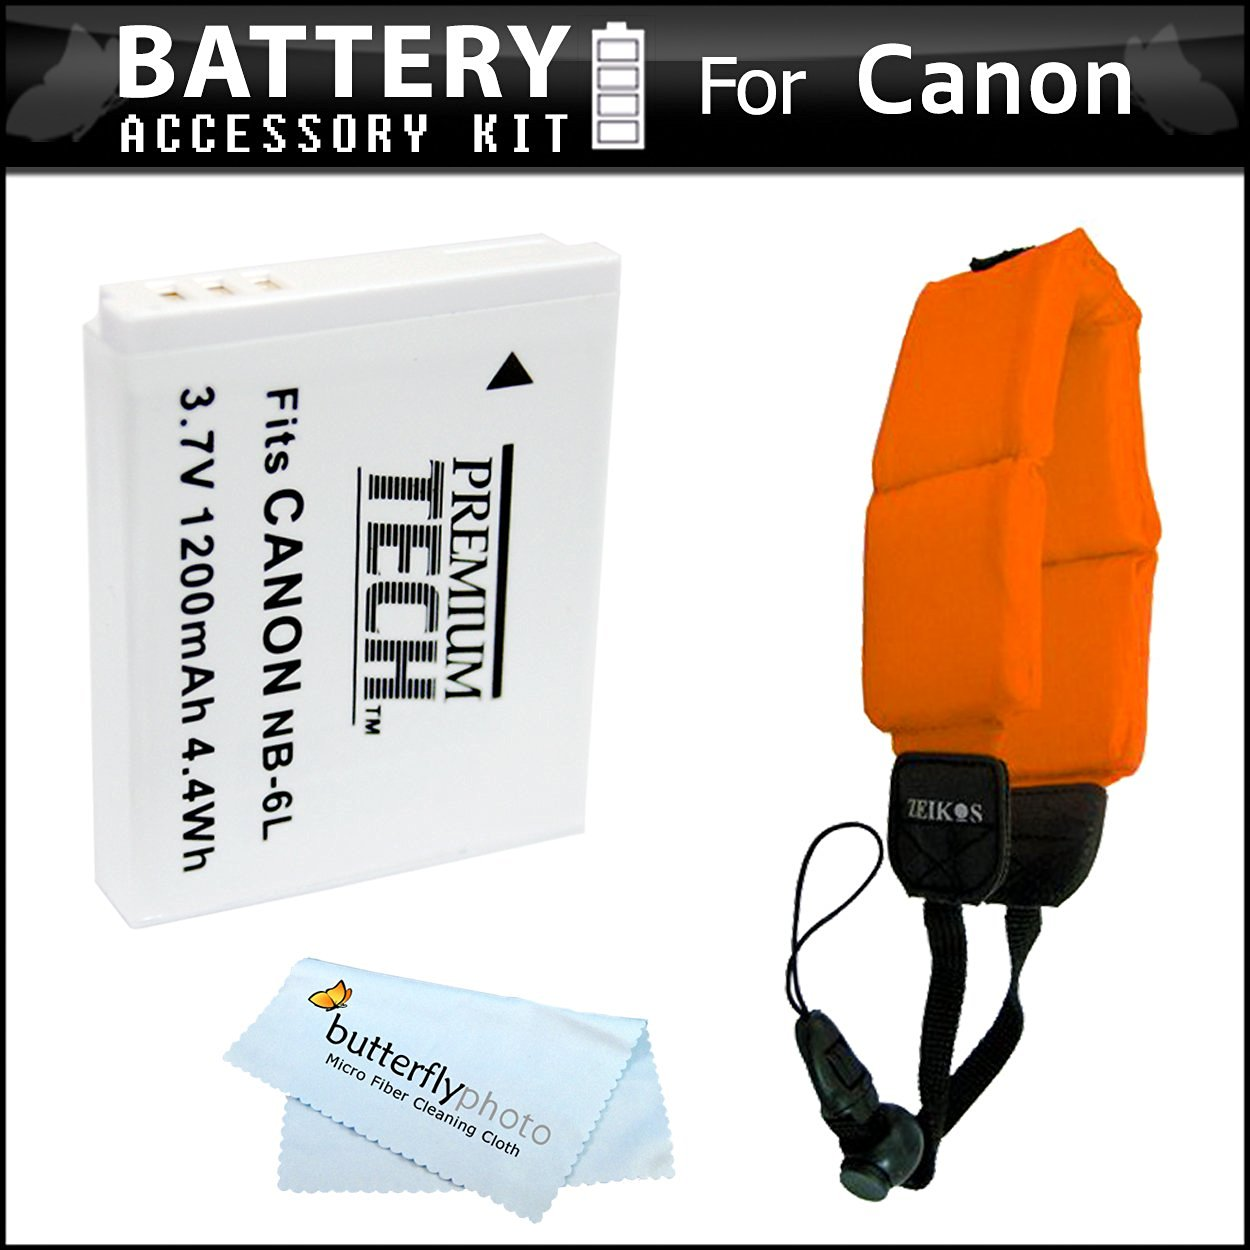 2 Pack Battery Kit For Canon PowerShot D10 D20 Waterproof Digital Camera Includes 2 Extended (1200Mah) Replacement NB-6L Batteries + Floating Strap + MicroFiber Cleaning Cloth